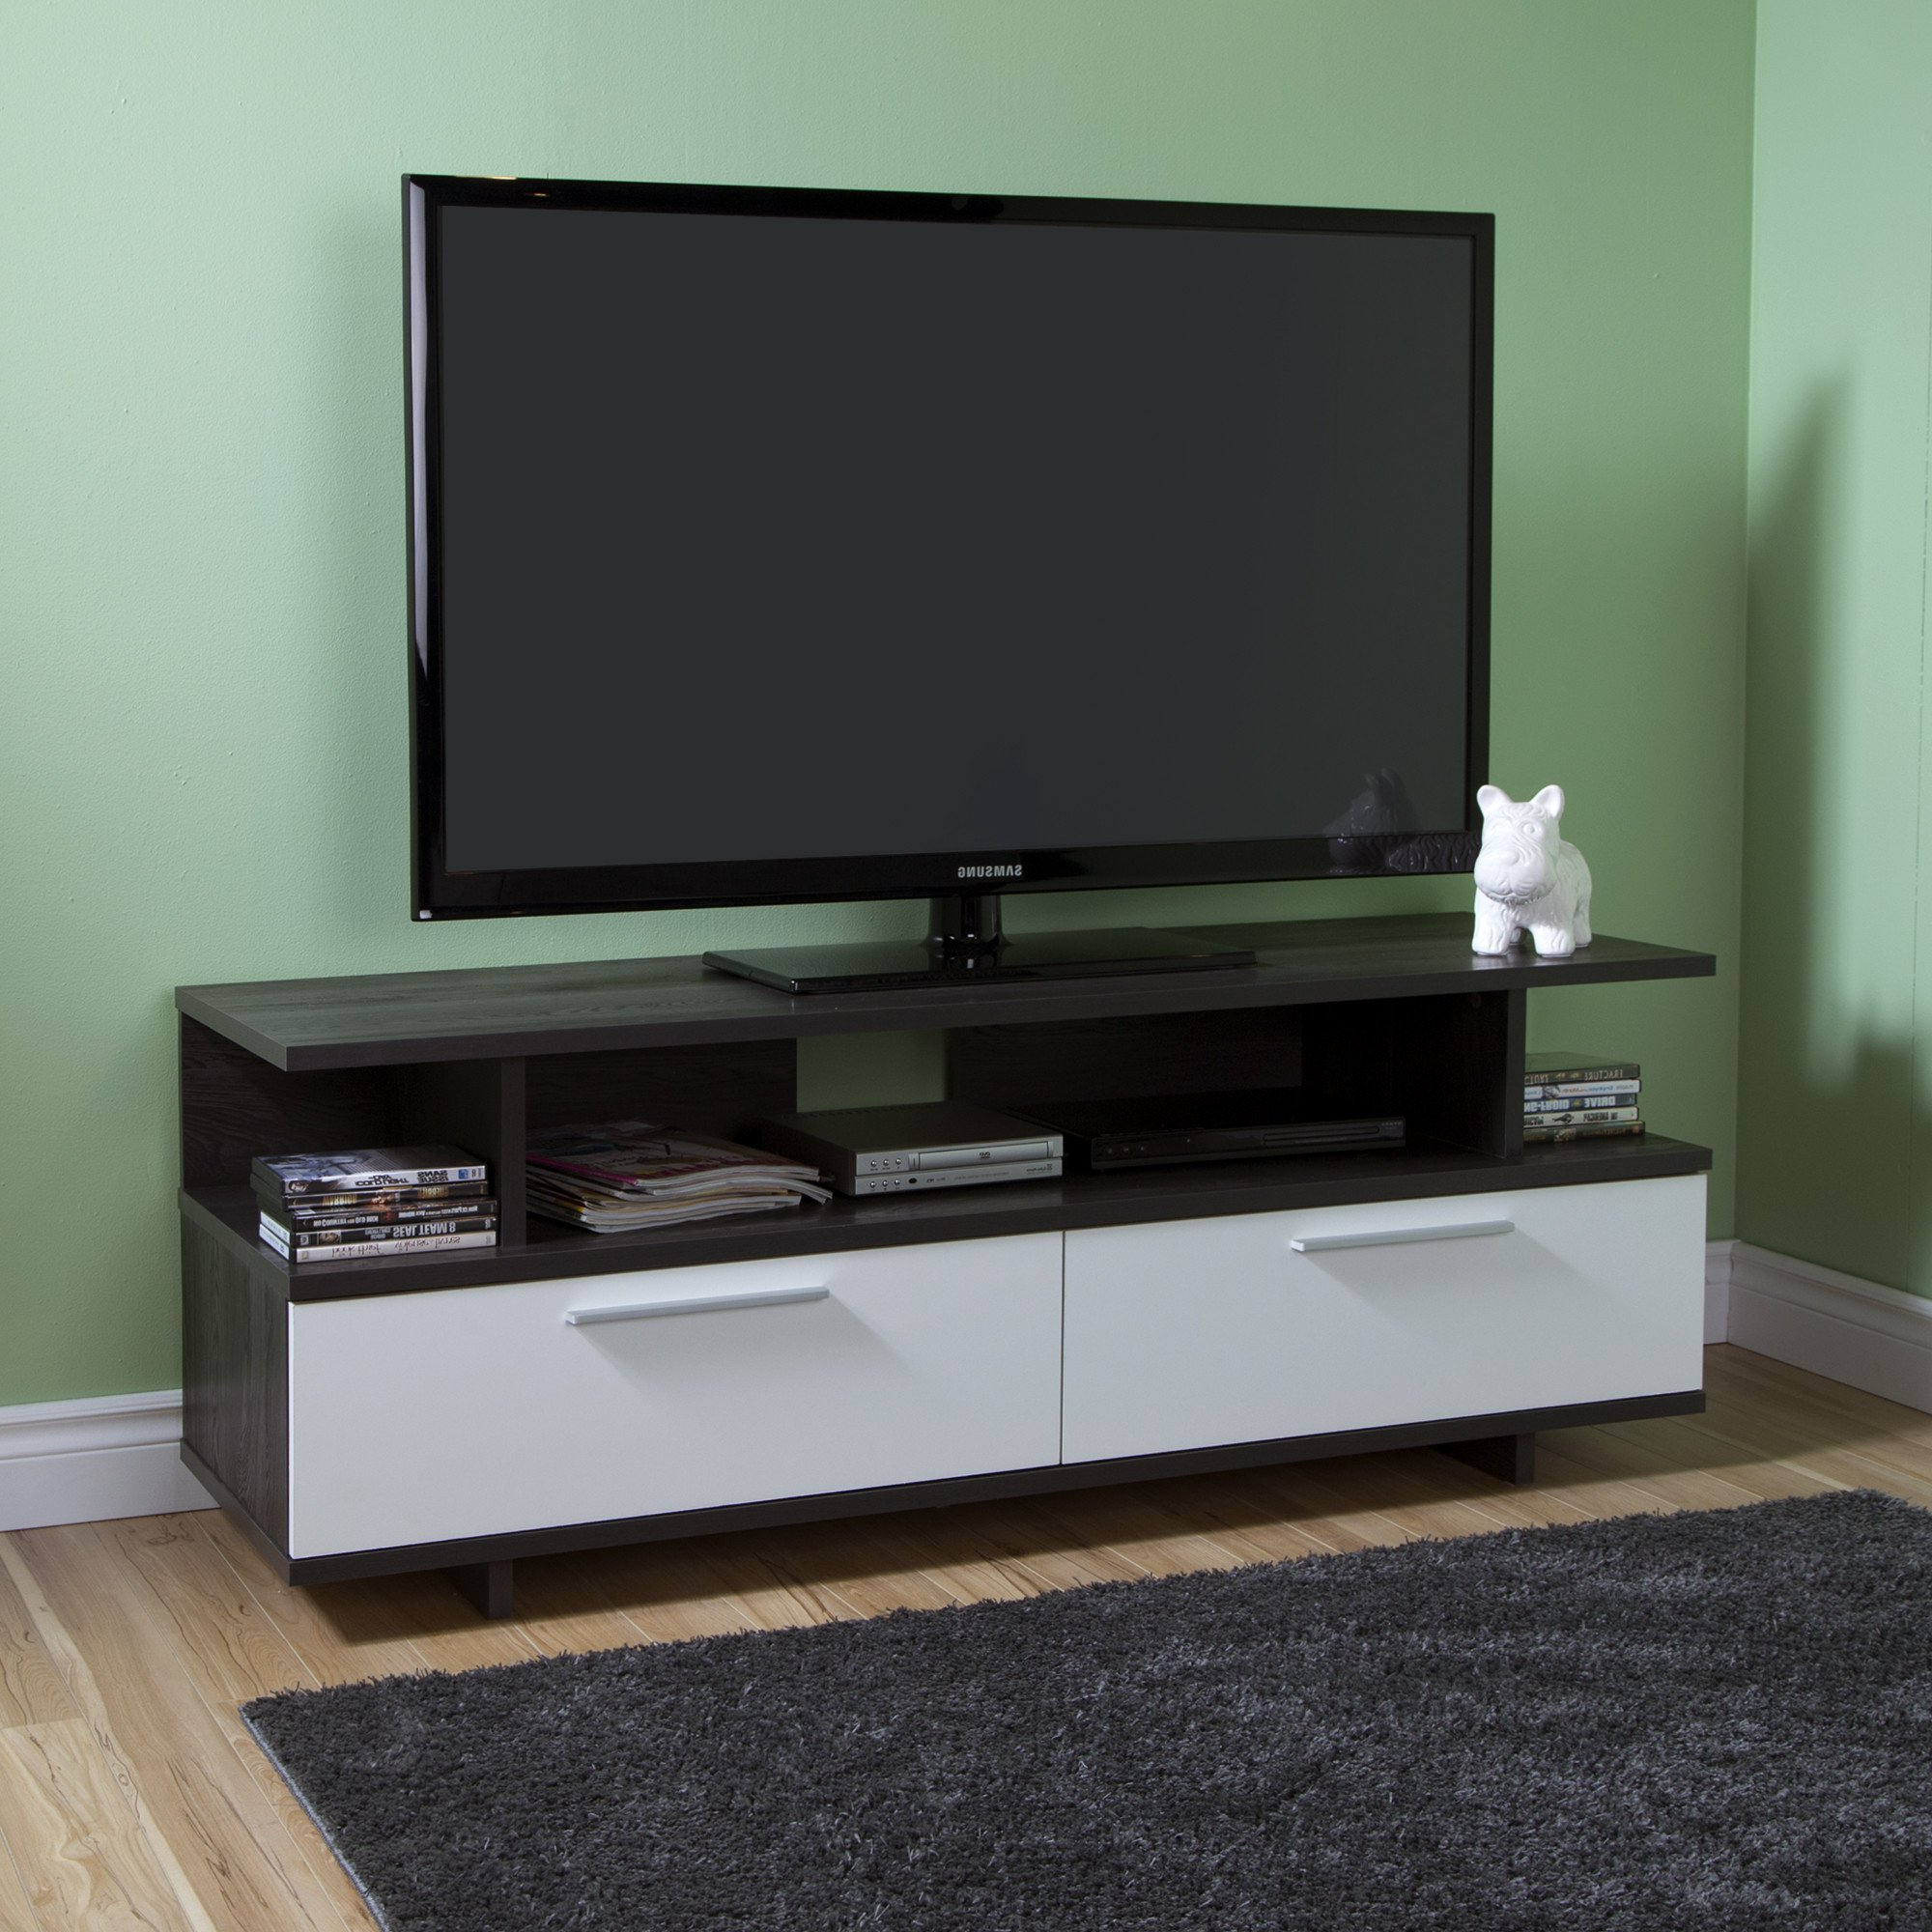 """Adayah Tv Stands For Tvs Up To 60"""" With Regard To Latest Reflekt Tv Stand With Drawers, For Tvs Up To 60 Inches (View 4 of 25)"""